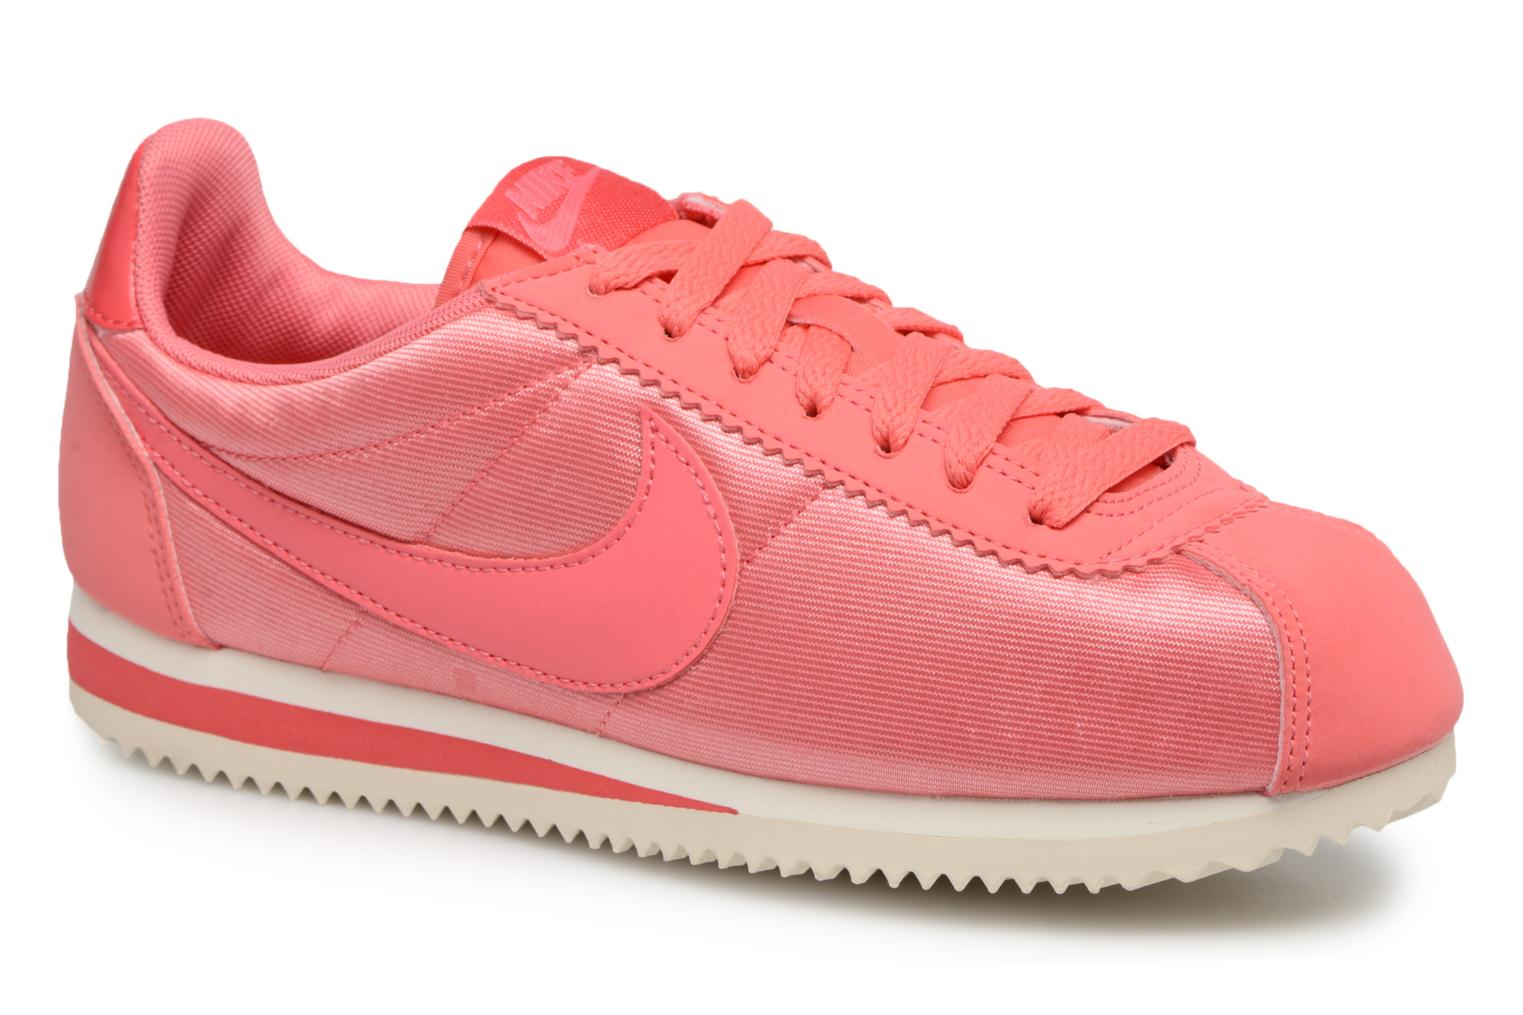 Nike Wmns Classic Cortez Nylon (Rose) - Baskets en Más cómodo Chaussures casual sauvages